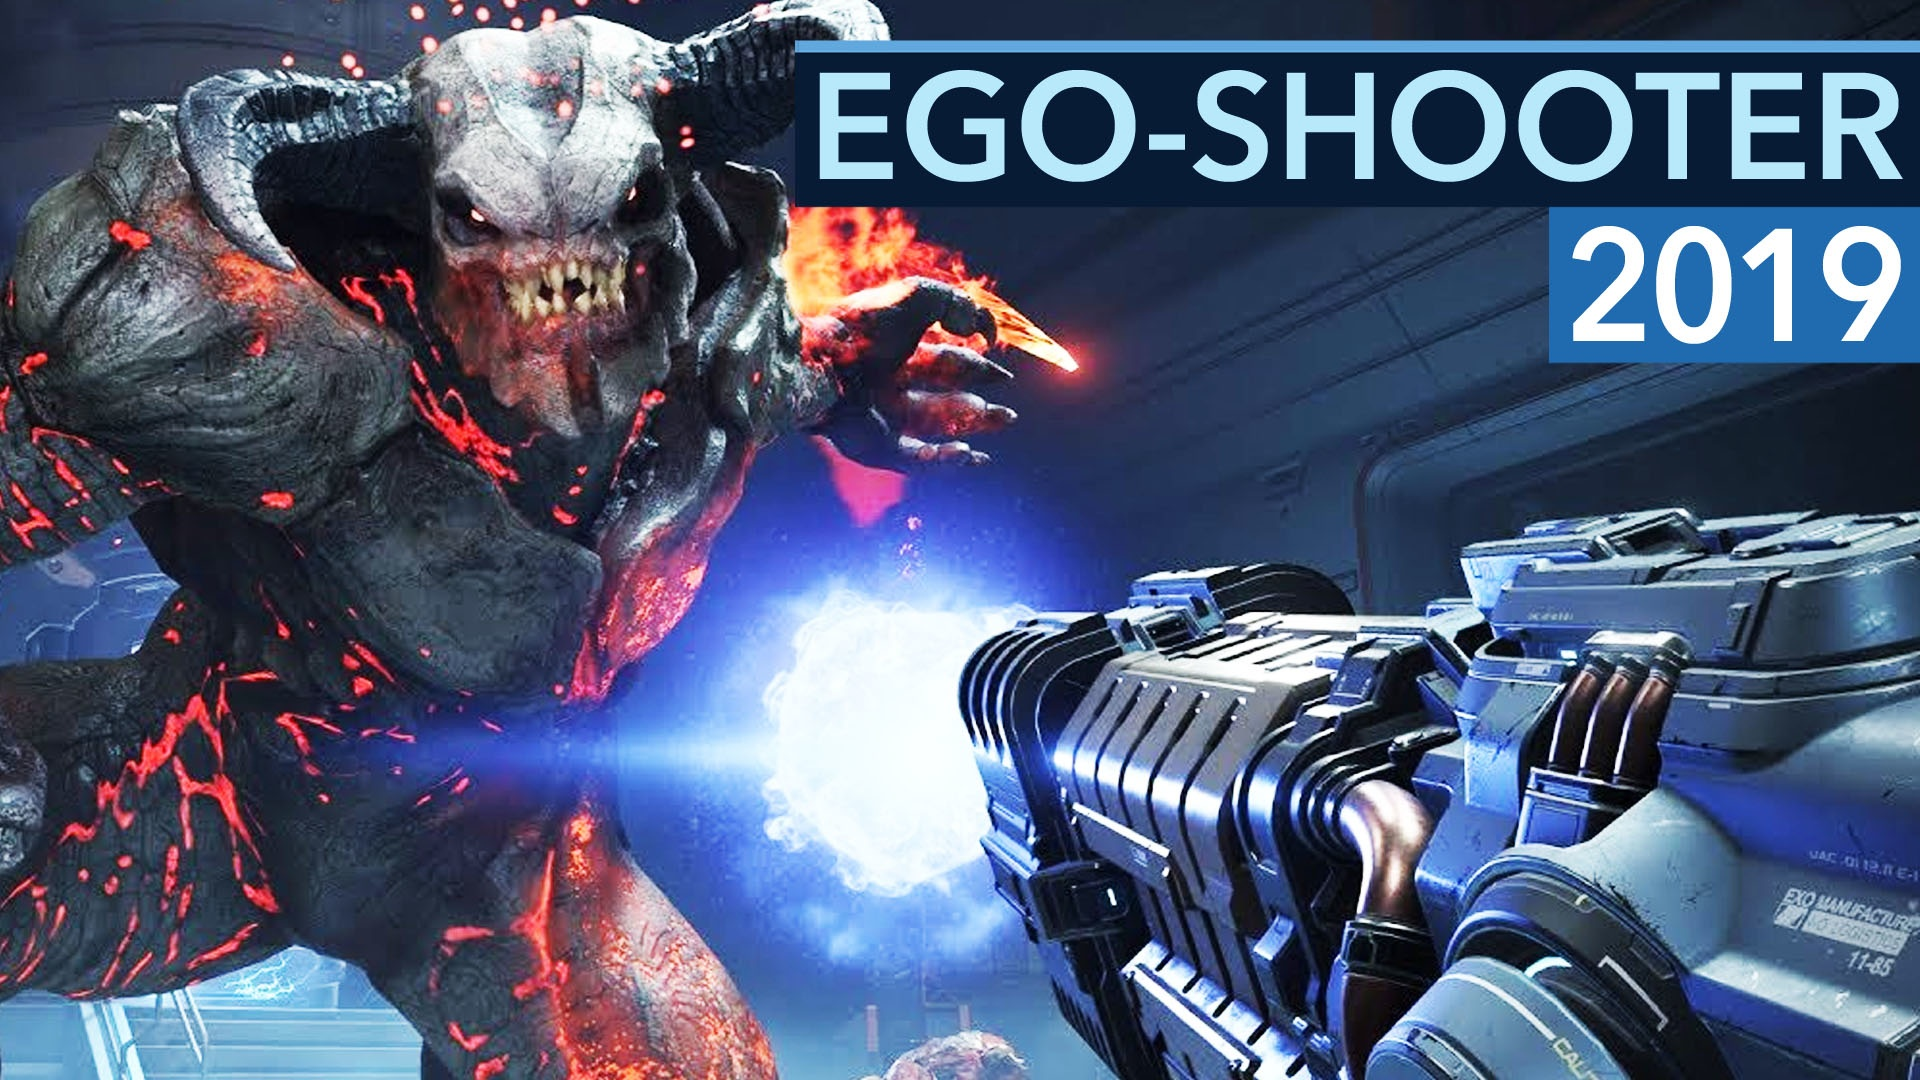 Ego-Shooter